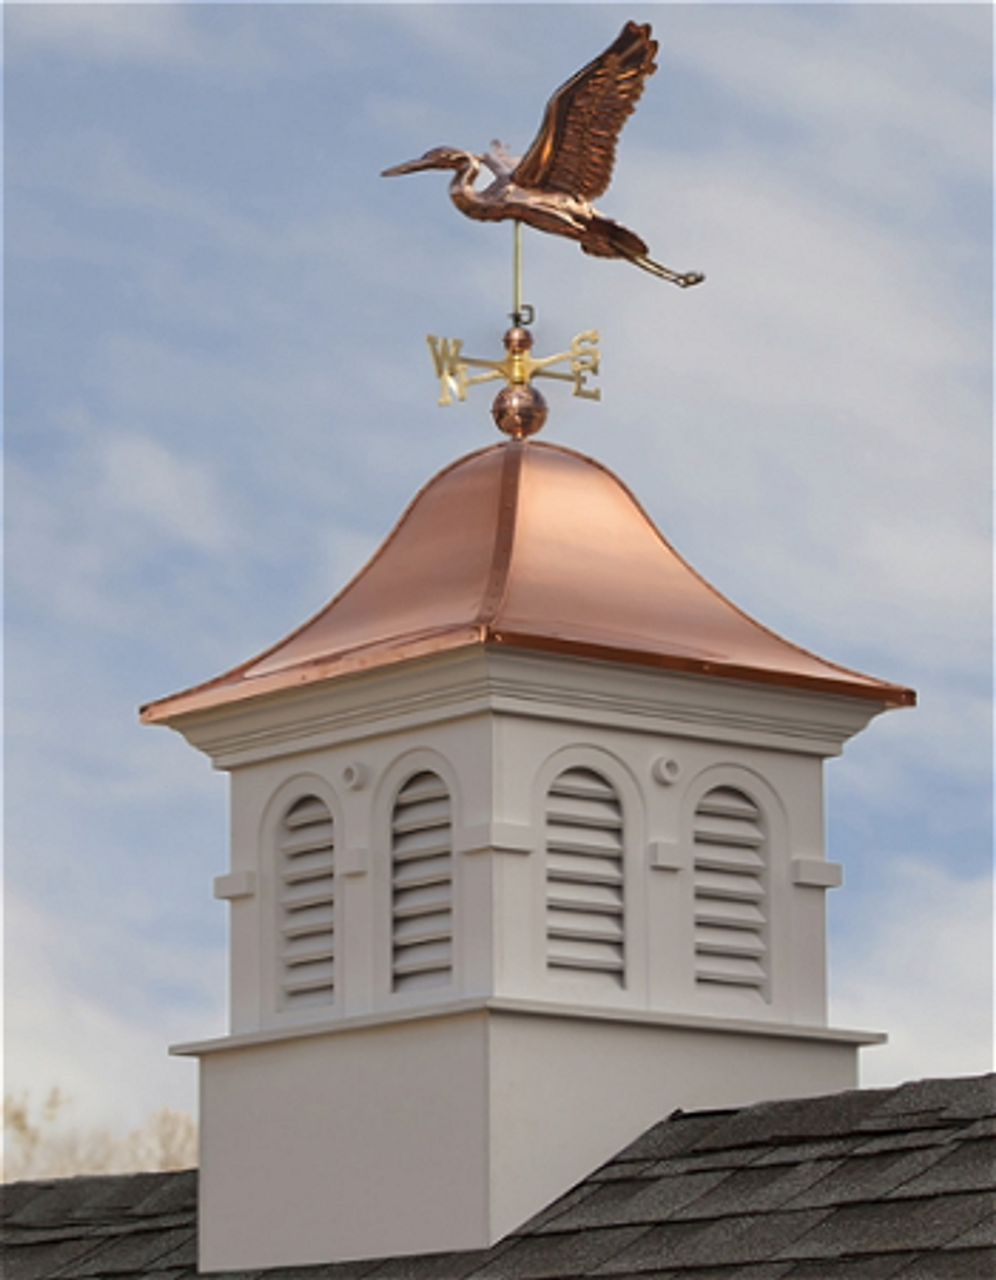 Good Directions Smithsonian Montgomery Vinyl Cupola 42in. square x 66in. high